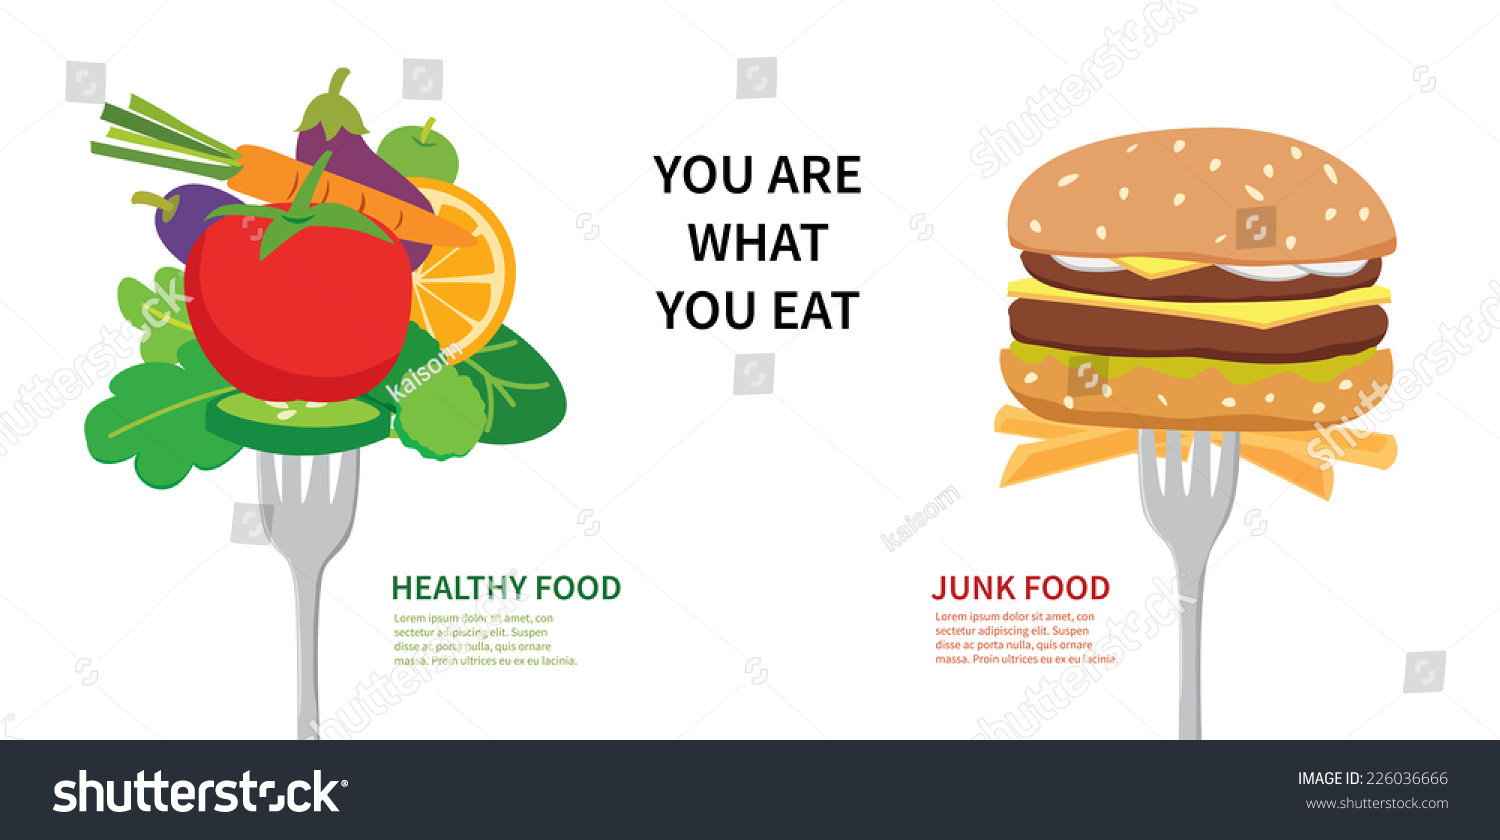 Difference Between Junk Food And Healthy Food In English